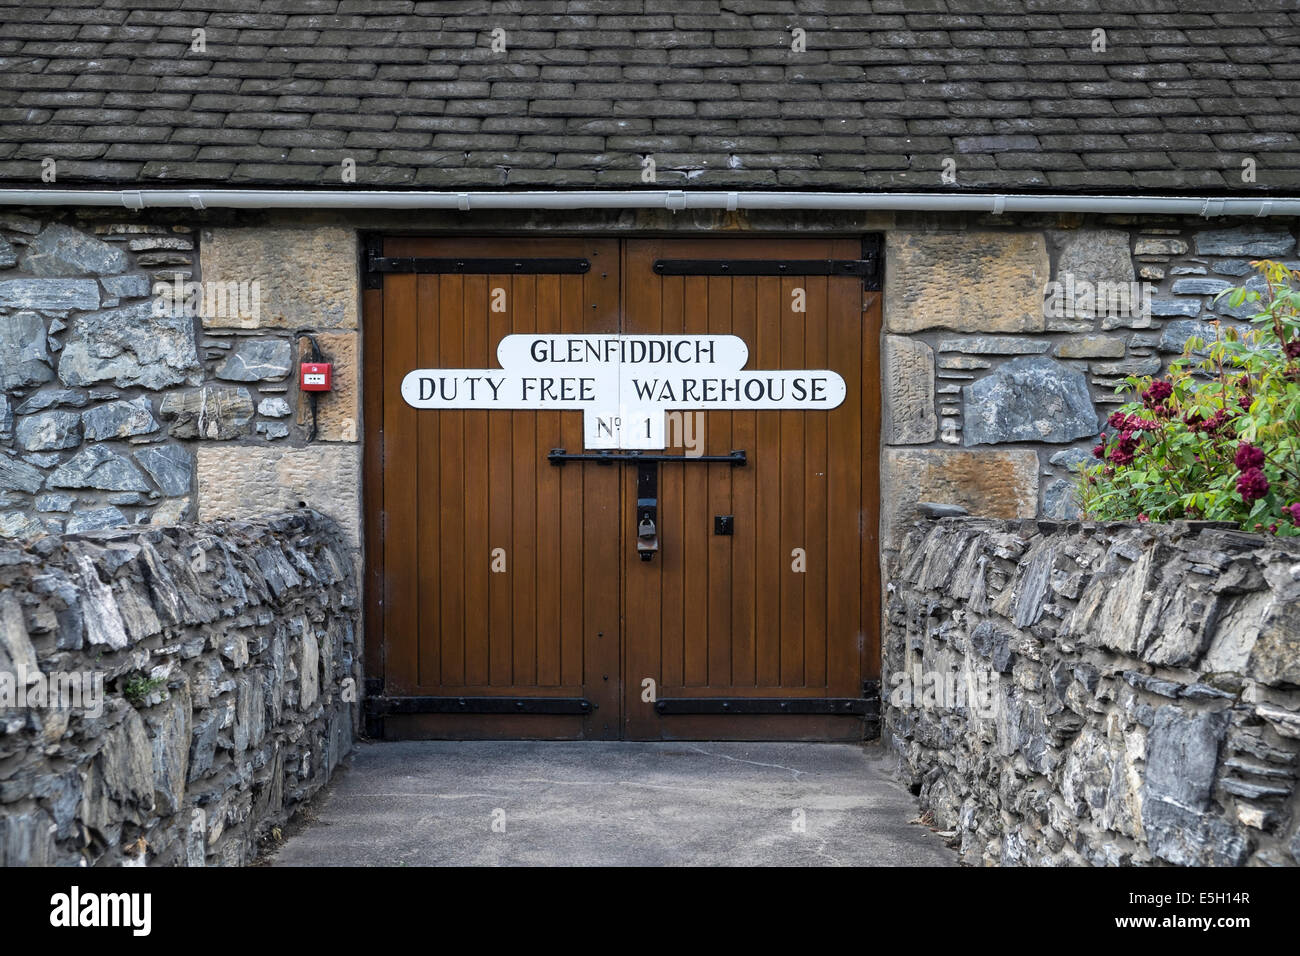 Duty free bonded warehouse doors at Glenfiddich whisky distillery inScotland - Stock Image